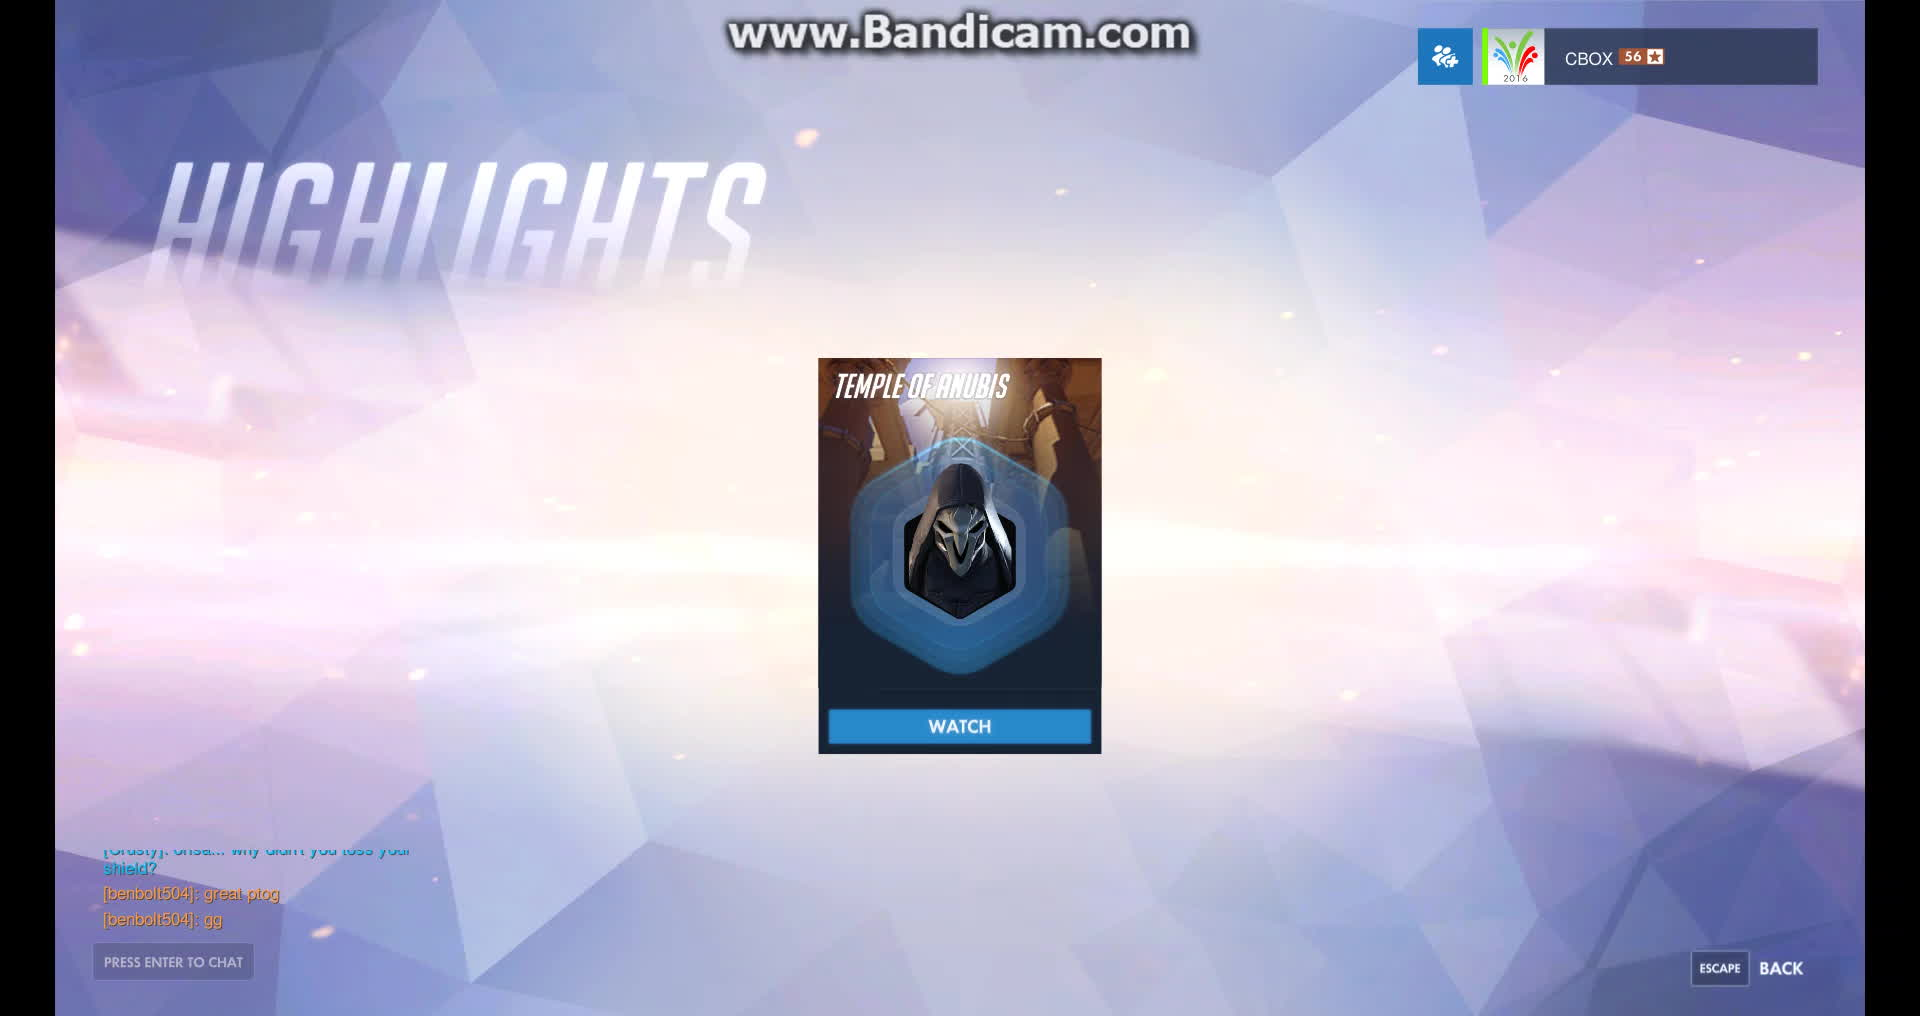 highlightgifs, Just reapin on the ptr you know GIFs